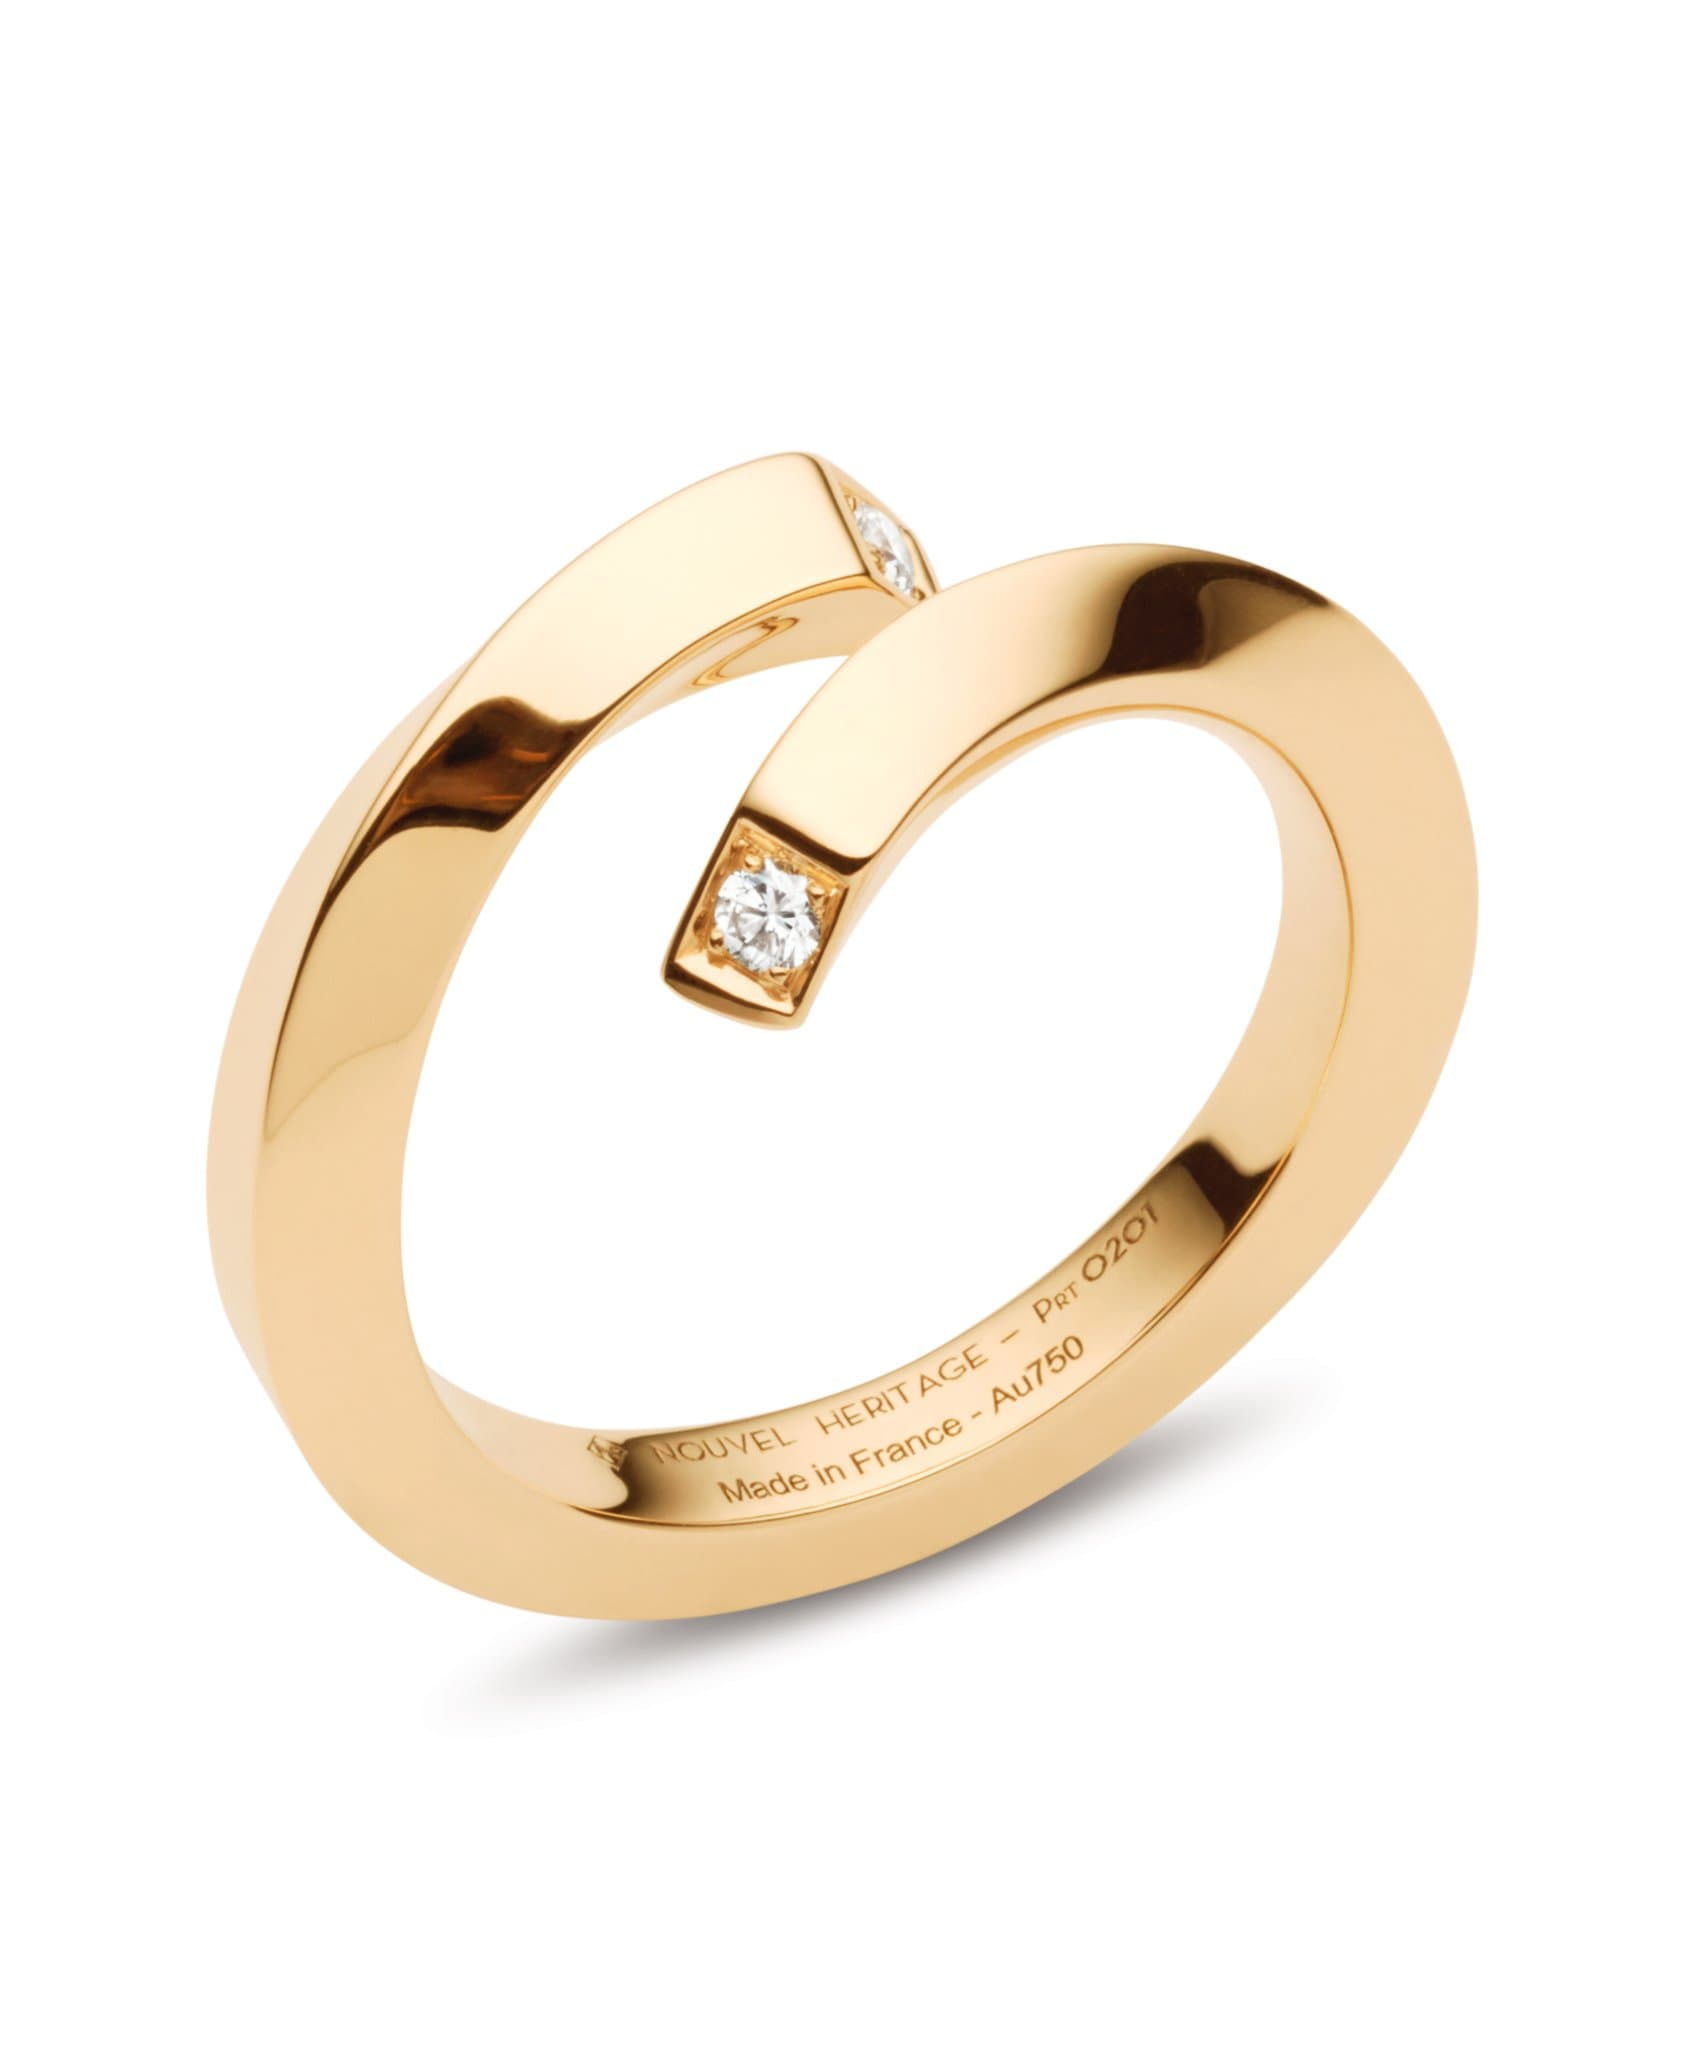 Gold Thread Ring: Discover Luxury Fine Jewelry | Nouvel Heritage || Yellow Gold